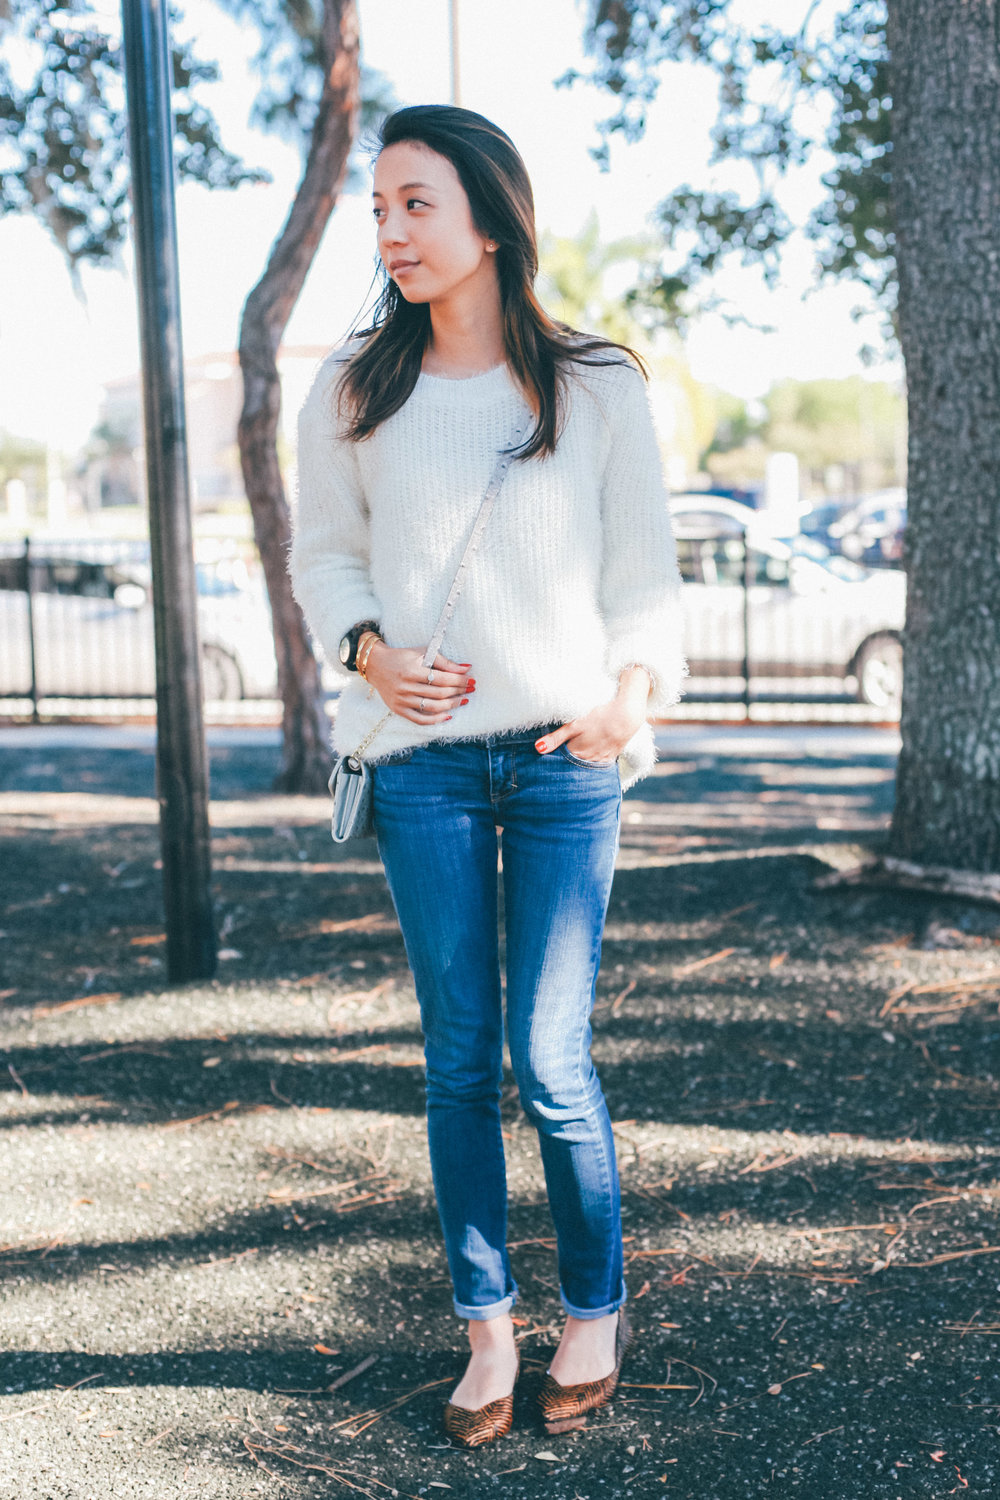 This Jenn Girl - Fuzzy White Sweater 1